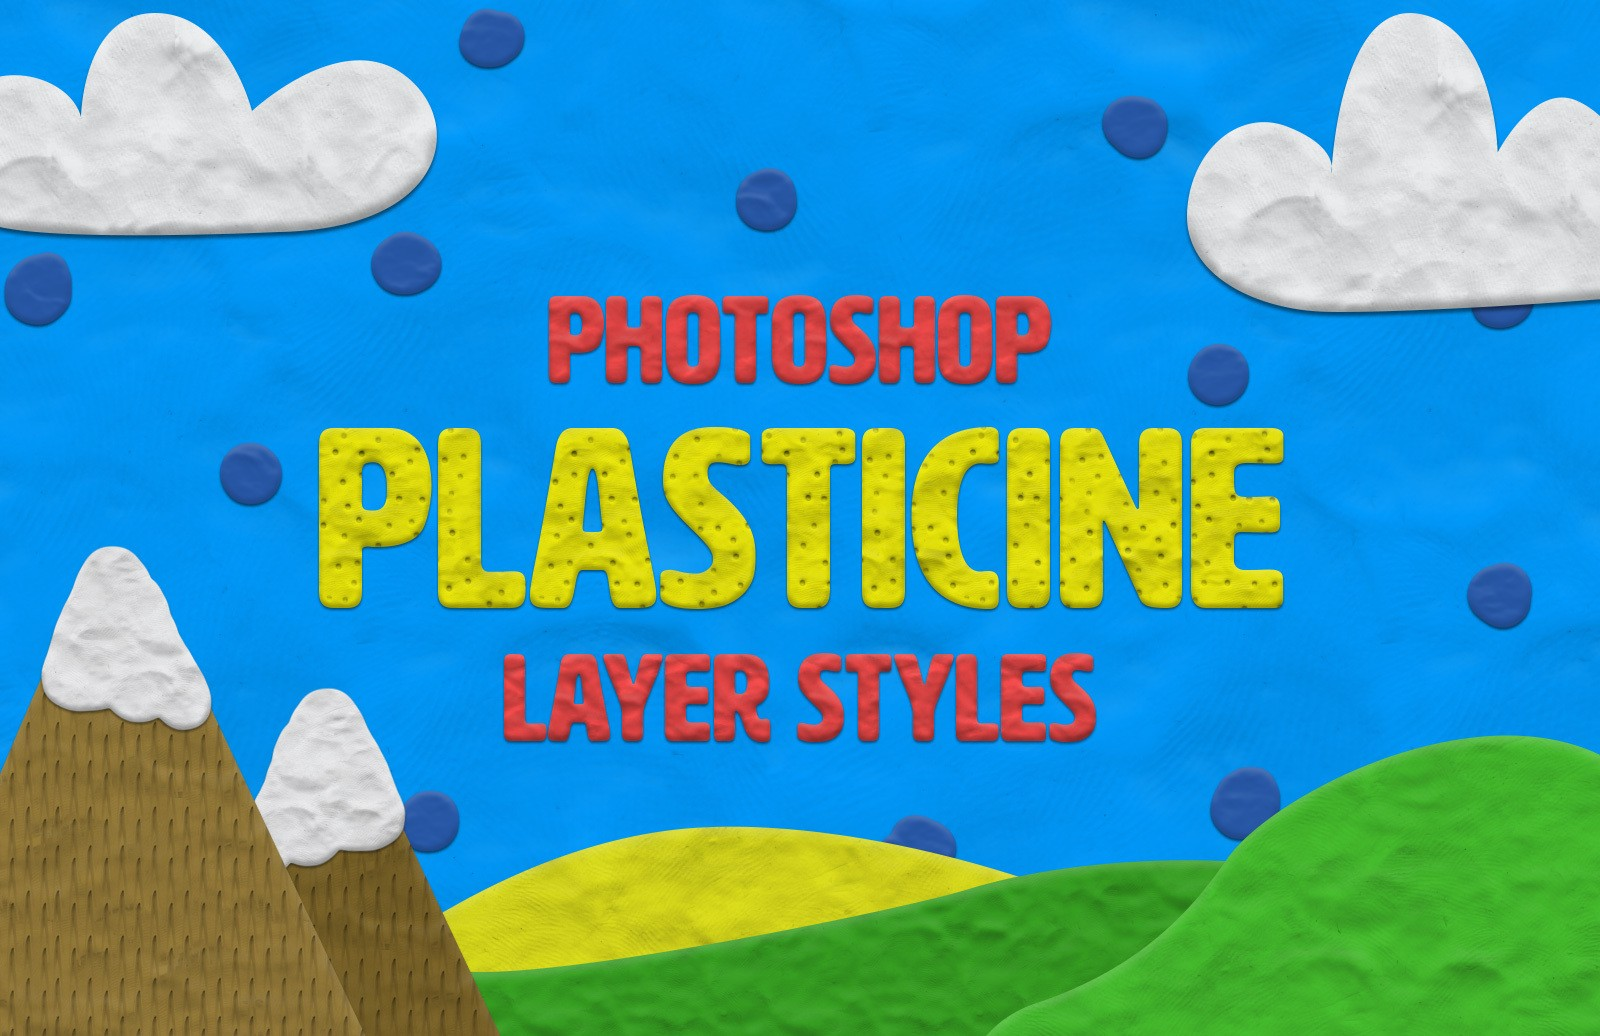 Plasticine Layer Styles Preview 1